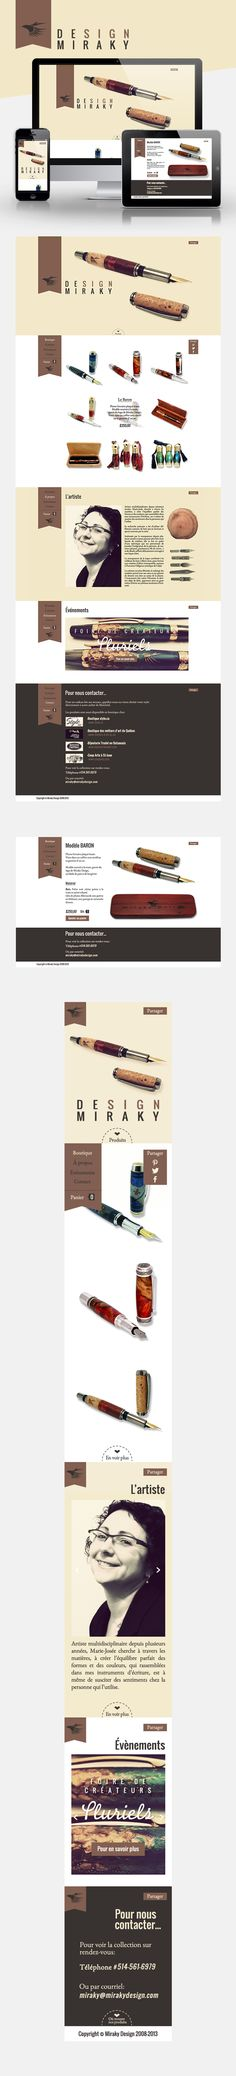 Miraky Design on Behance